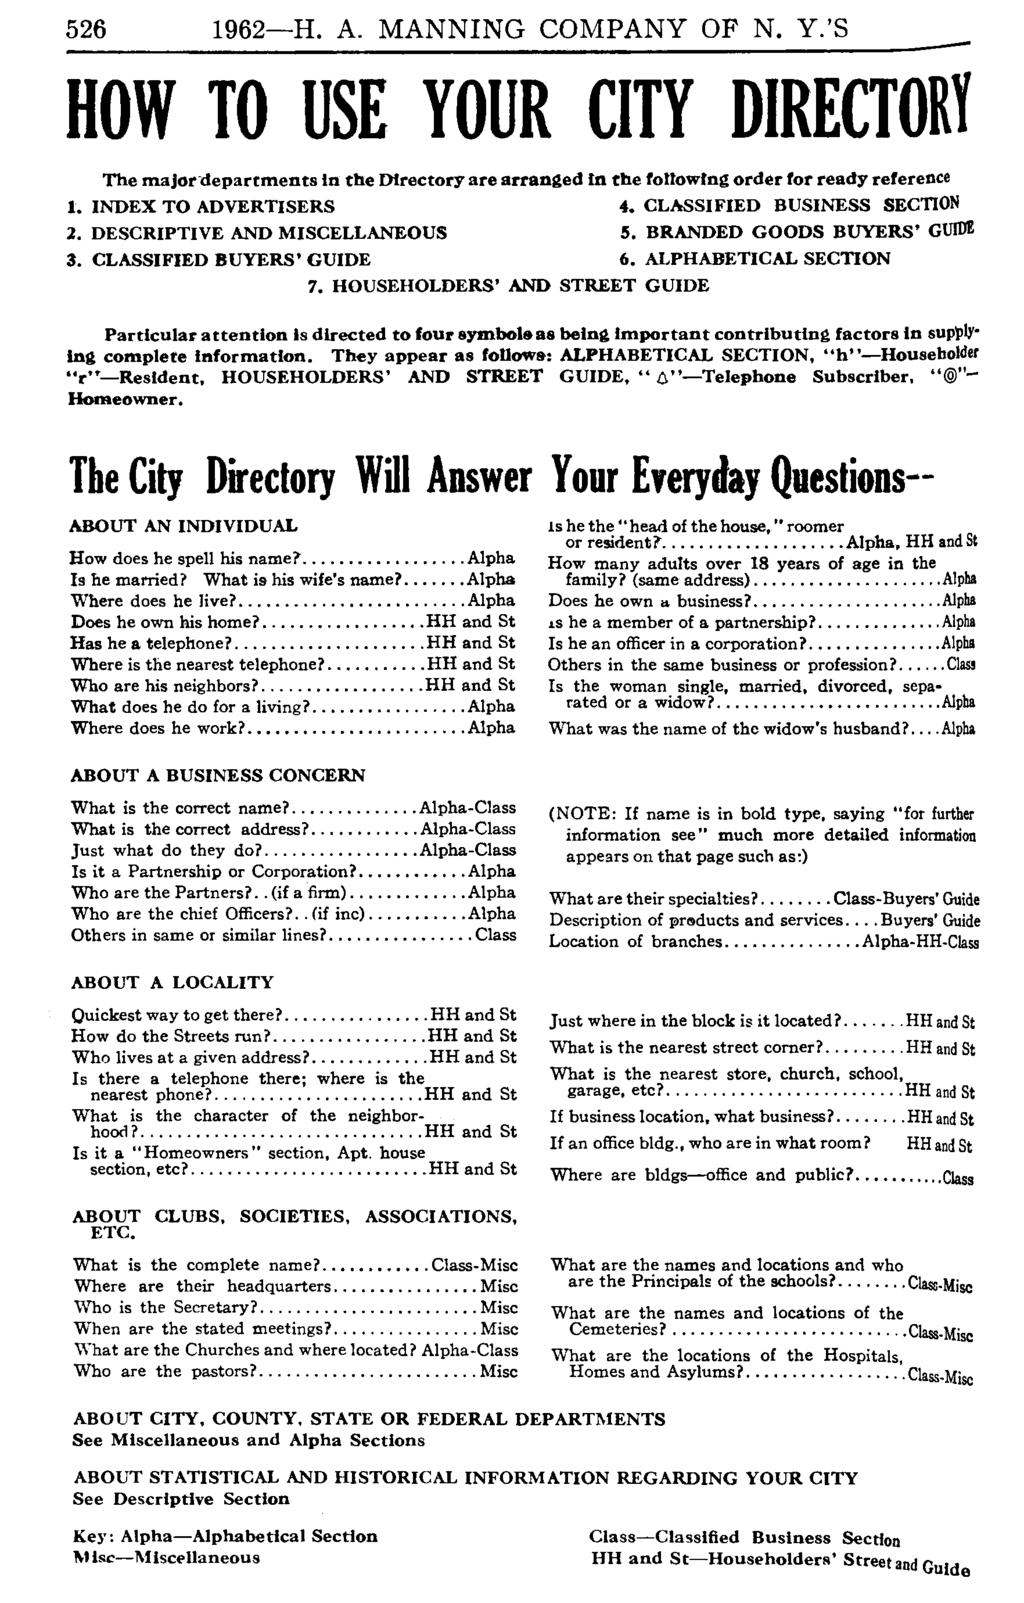 526 1962-H. A. MANNING COMPANY OF N. Y.'S HOW TO USE YOUR CITY DIRECTORY The majordeparrments in the Directoryare arranged in the fonowlng order for ready reference 1.